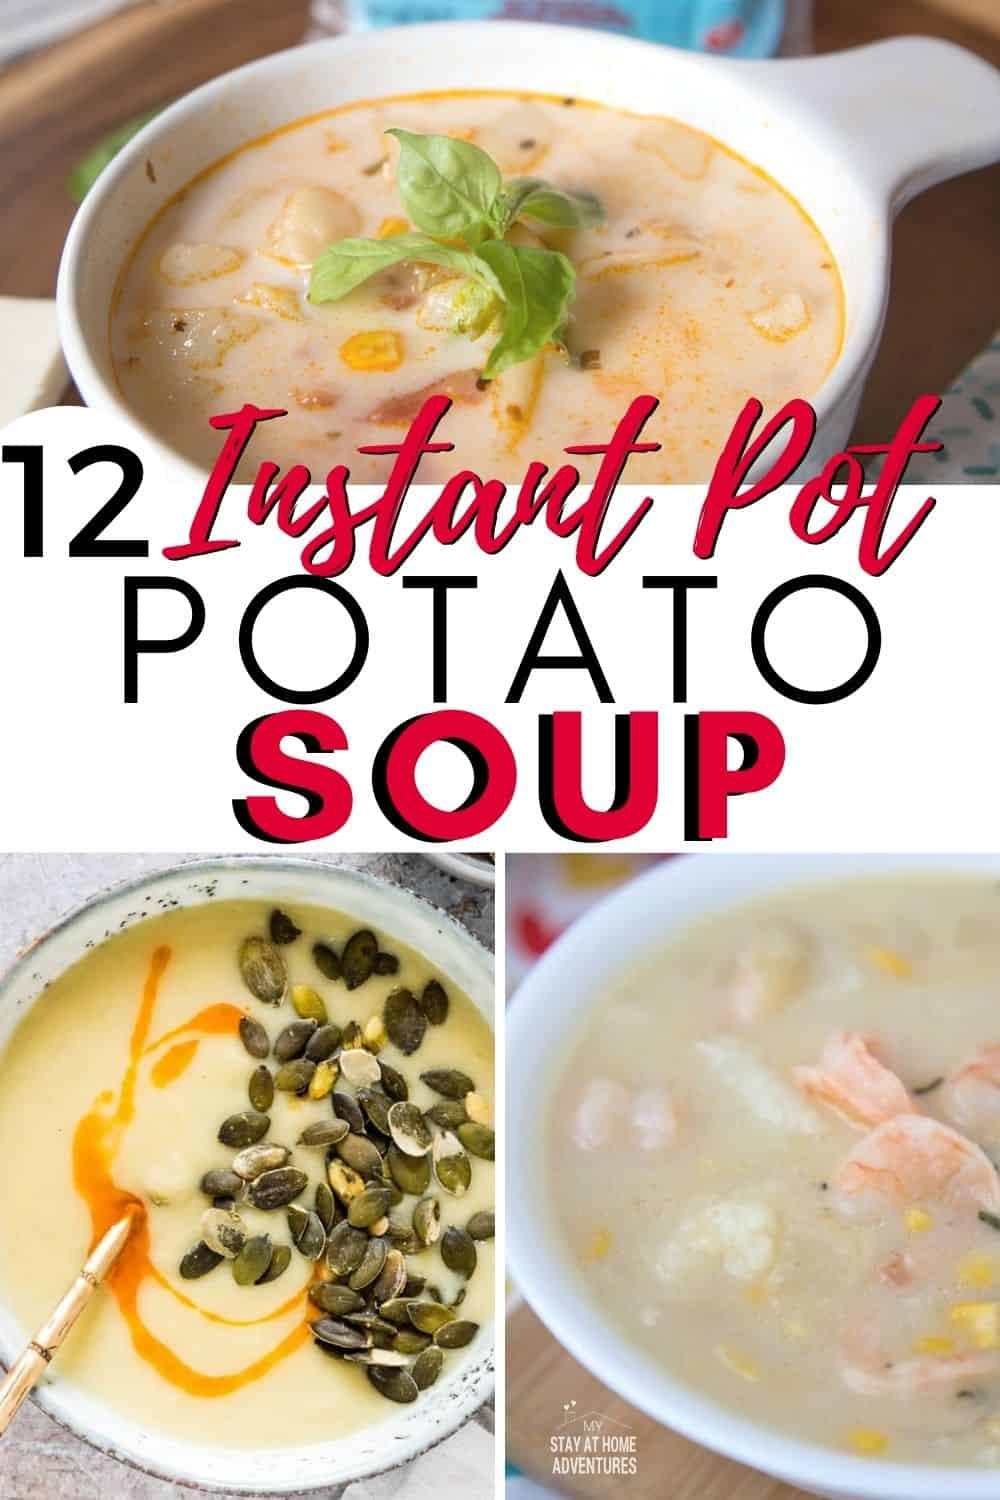 Looking for a great potato soup recipe? Find the best potato soups made with an Instant Pot from ham and potato to leek and potato. via @mystayathome